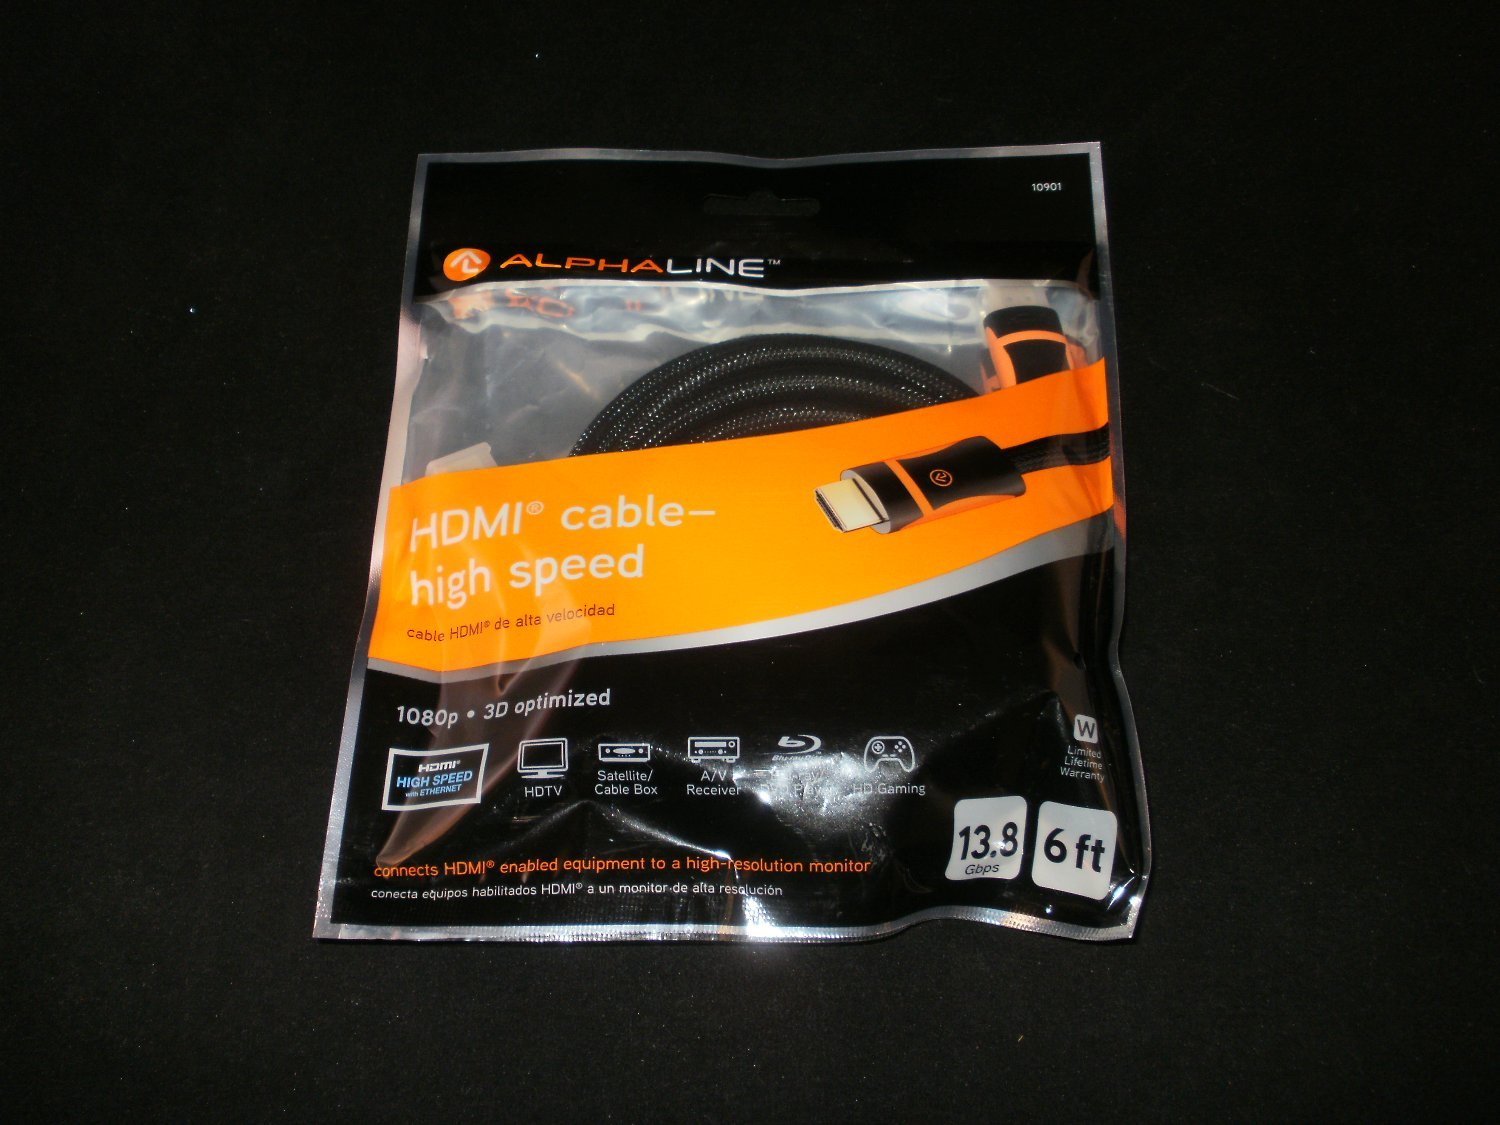 Alphaline 6 Foot 1080p 3D Optimized High Speed HDMI Cable - Brand New